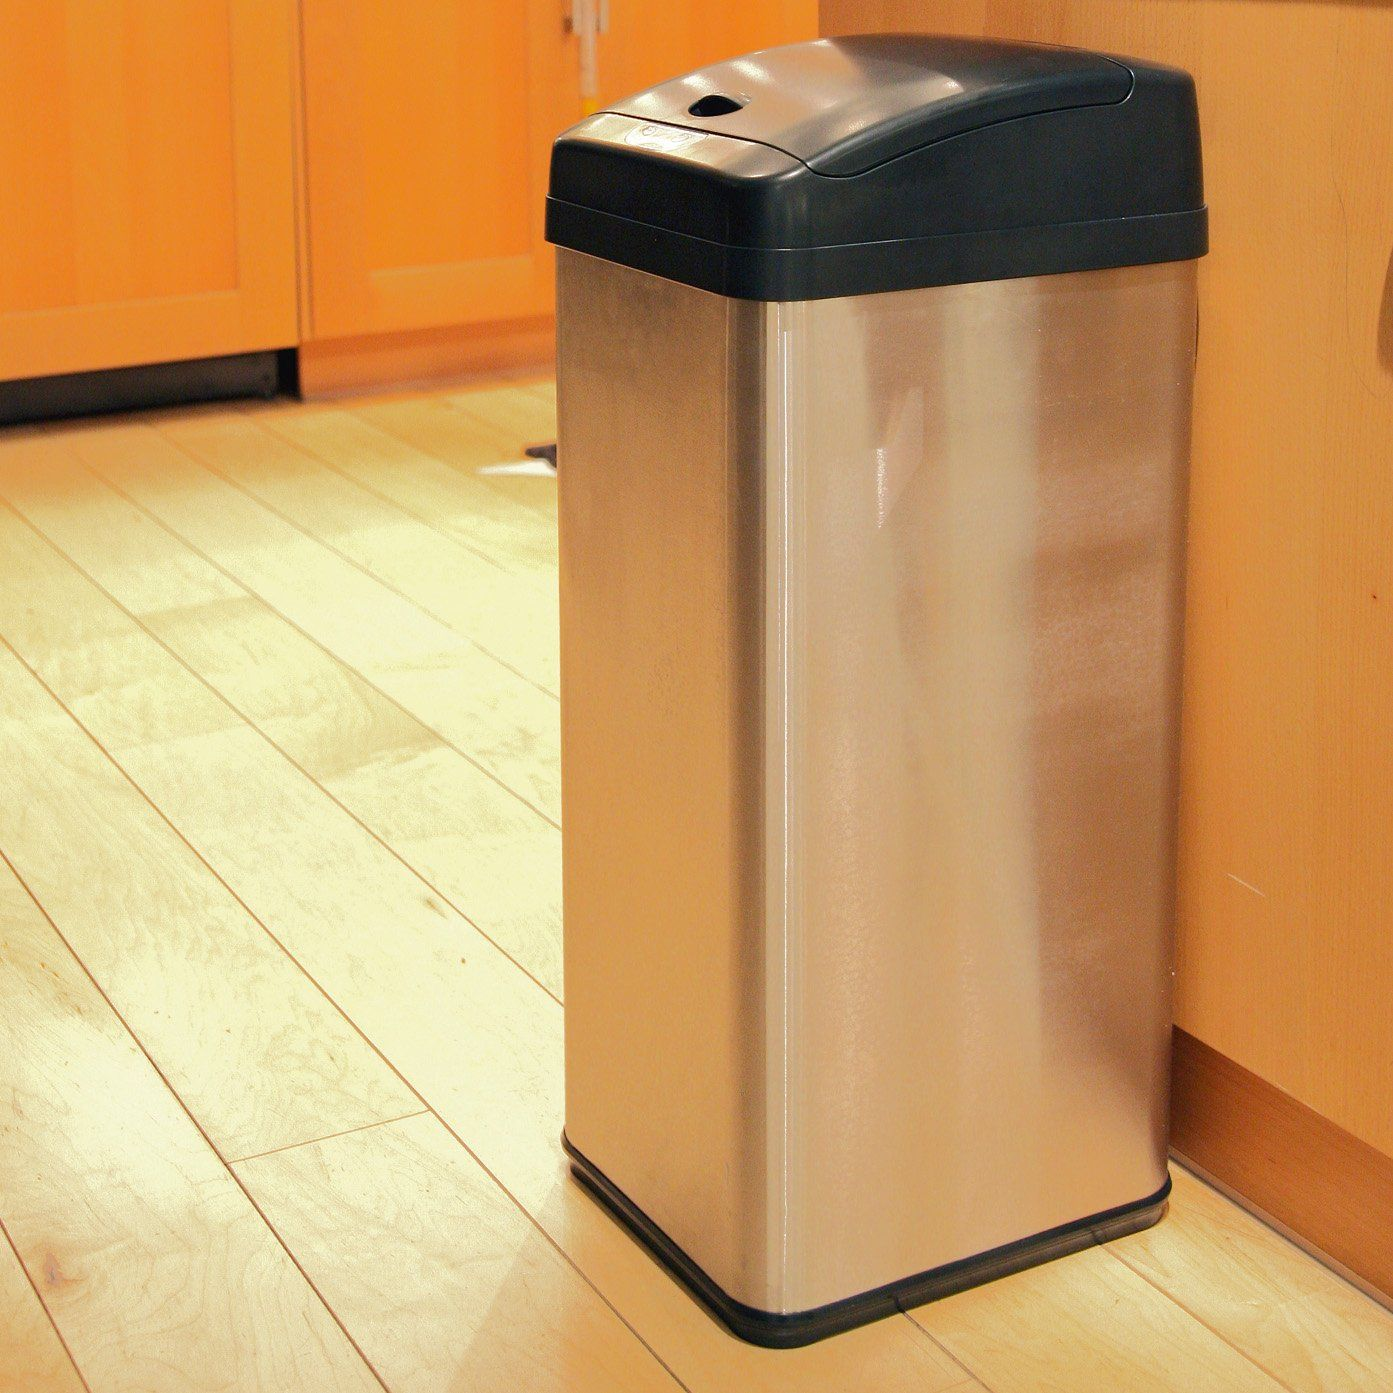 Itouchless It13mx Trashcan Mx Stainless Steel 13 Gal Trash Can Trash Can Kitchen Trash Cans Recycle Trash 13 gallon trash can dimensions